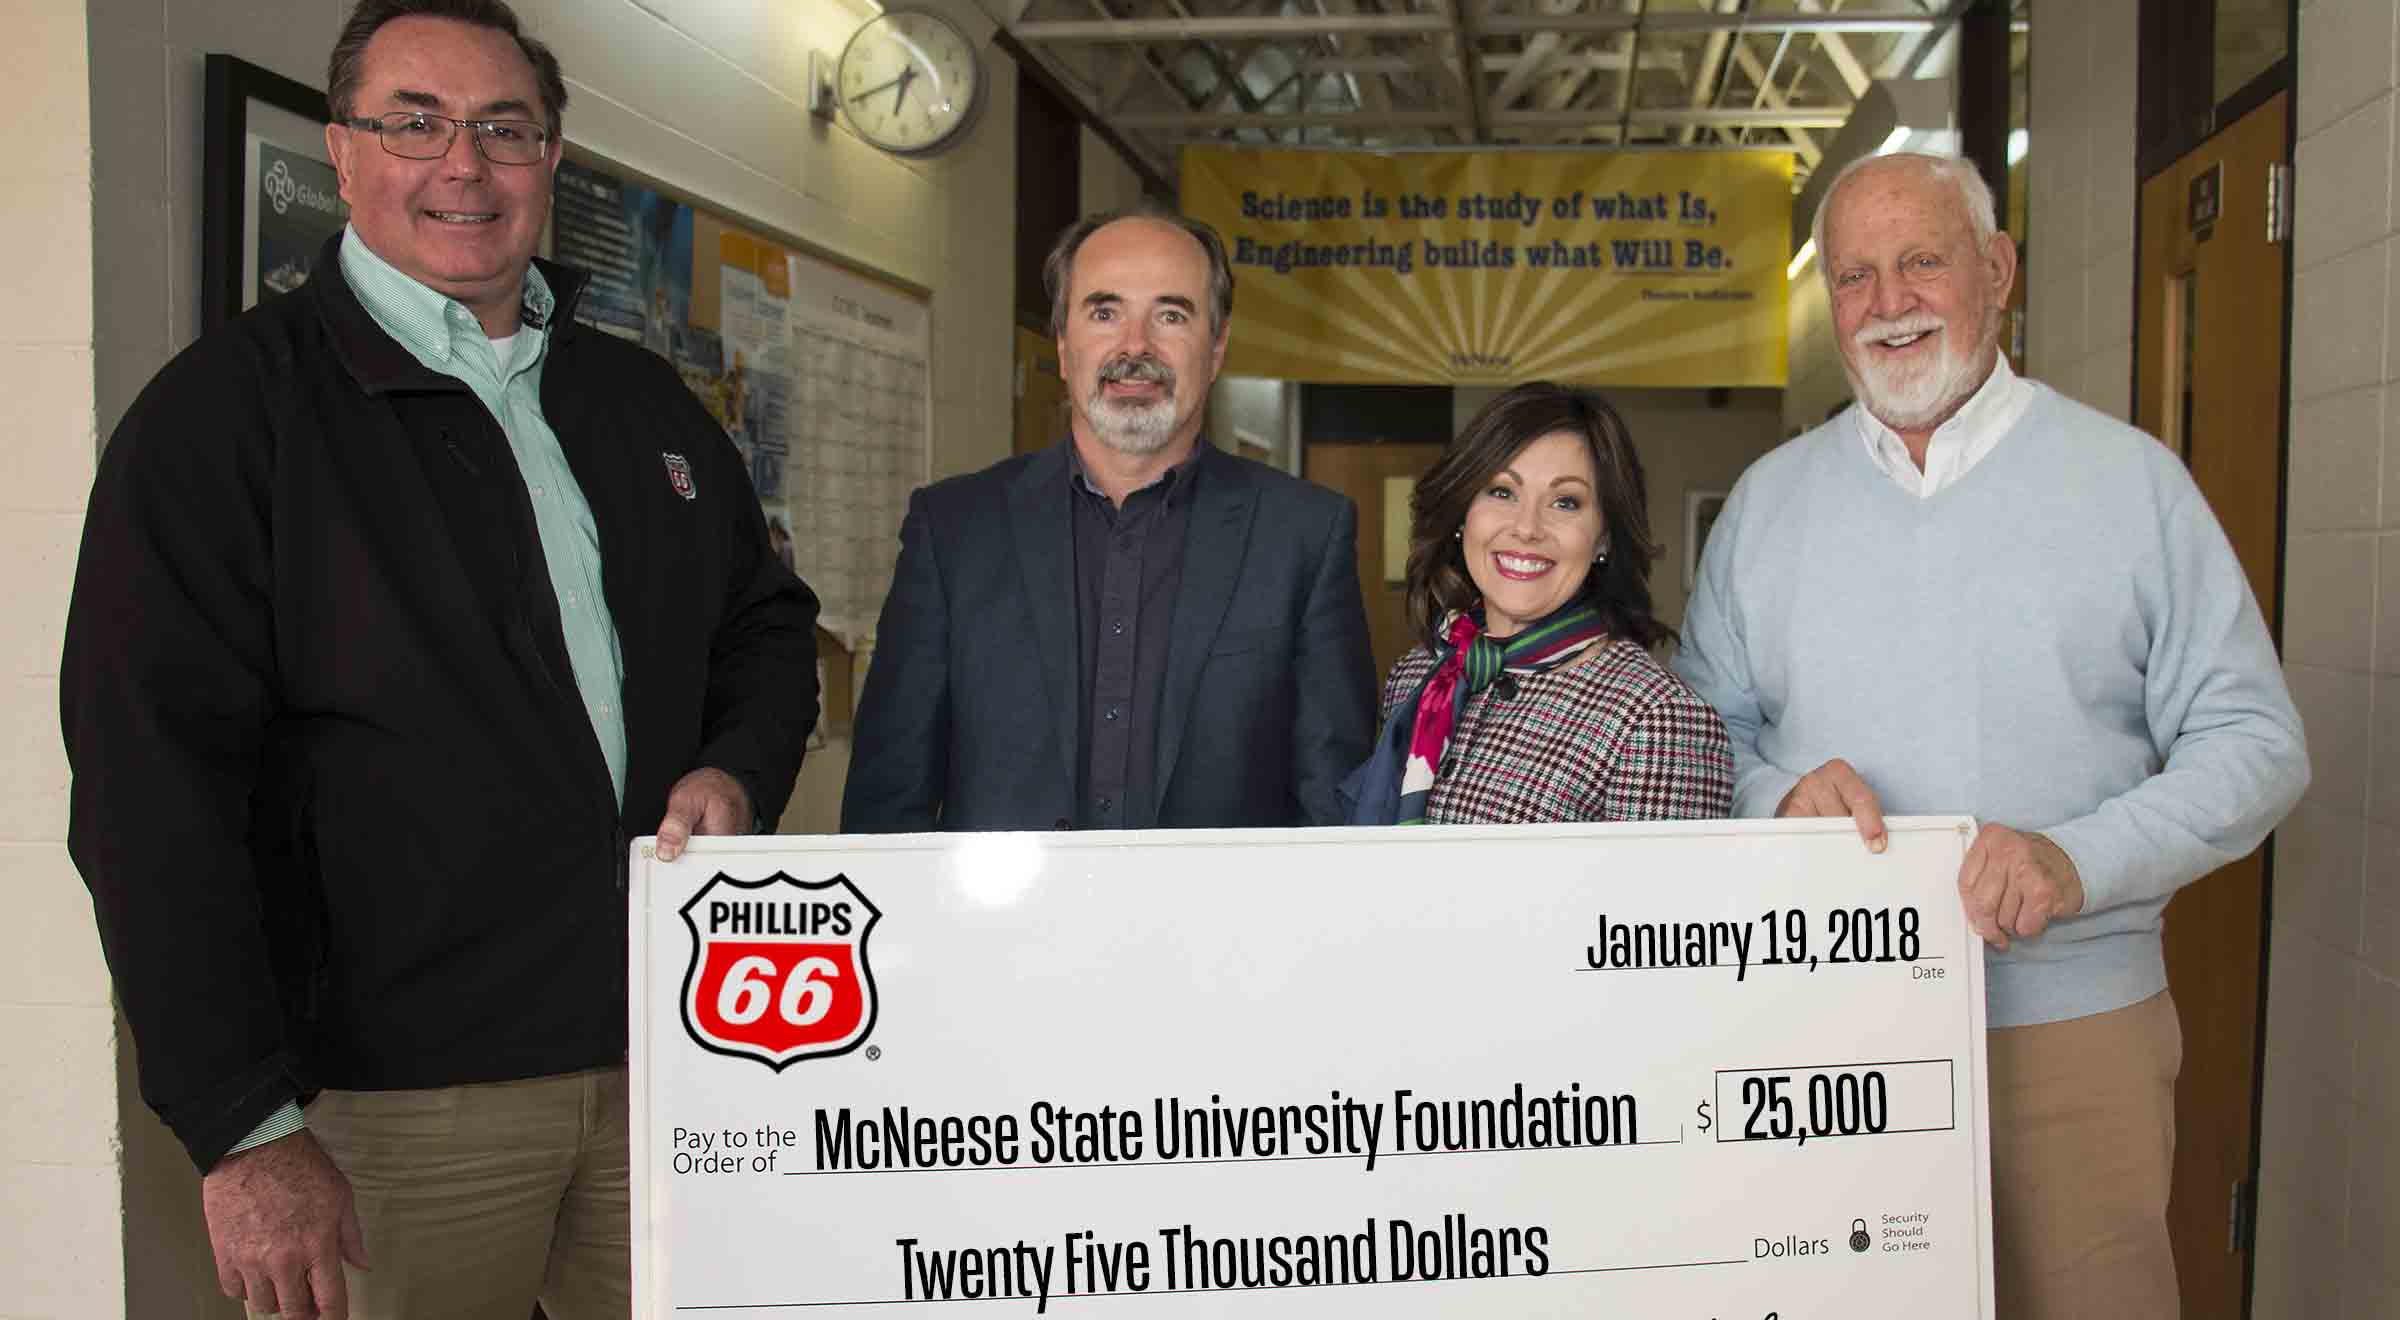 Dr. Nikos Kiritsis and Richard H. Reid of McNeese stand with Richard G Harbison and Megan Hartman of Phillips 66 for the check presentation.